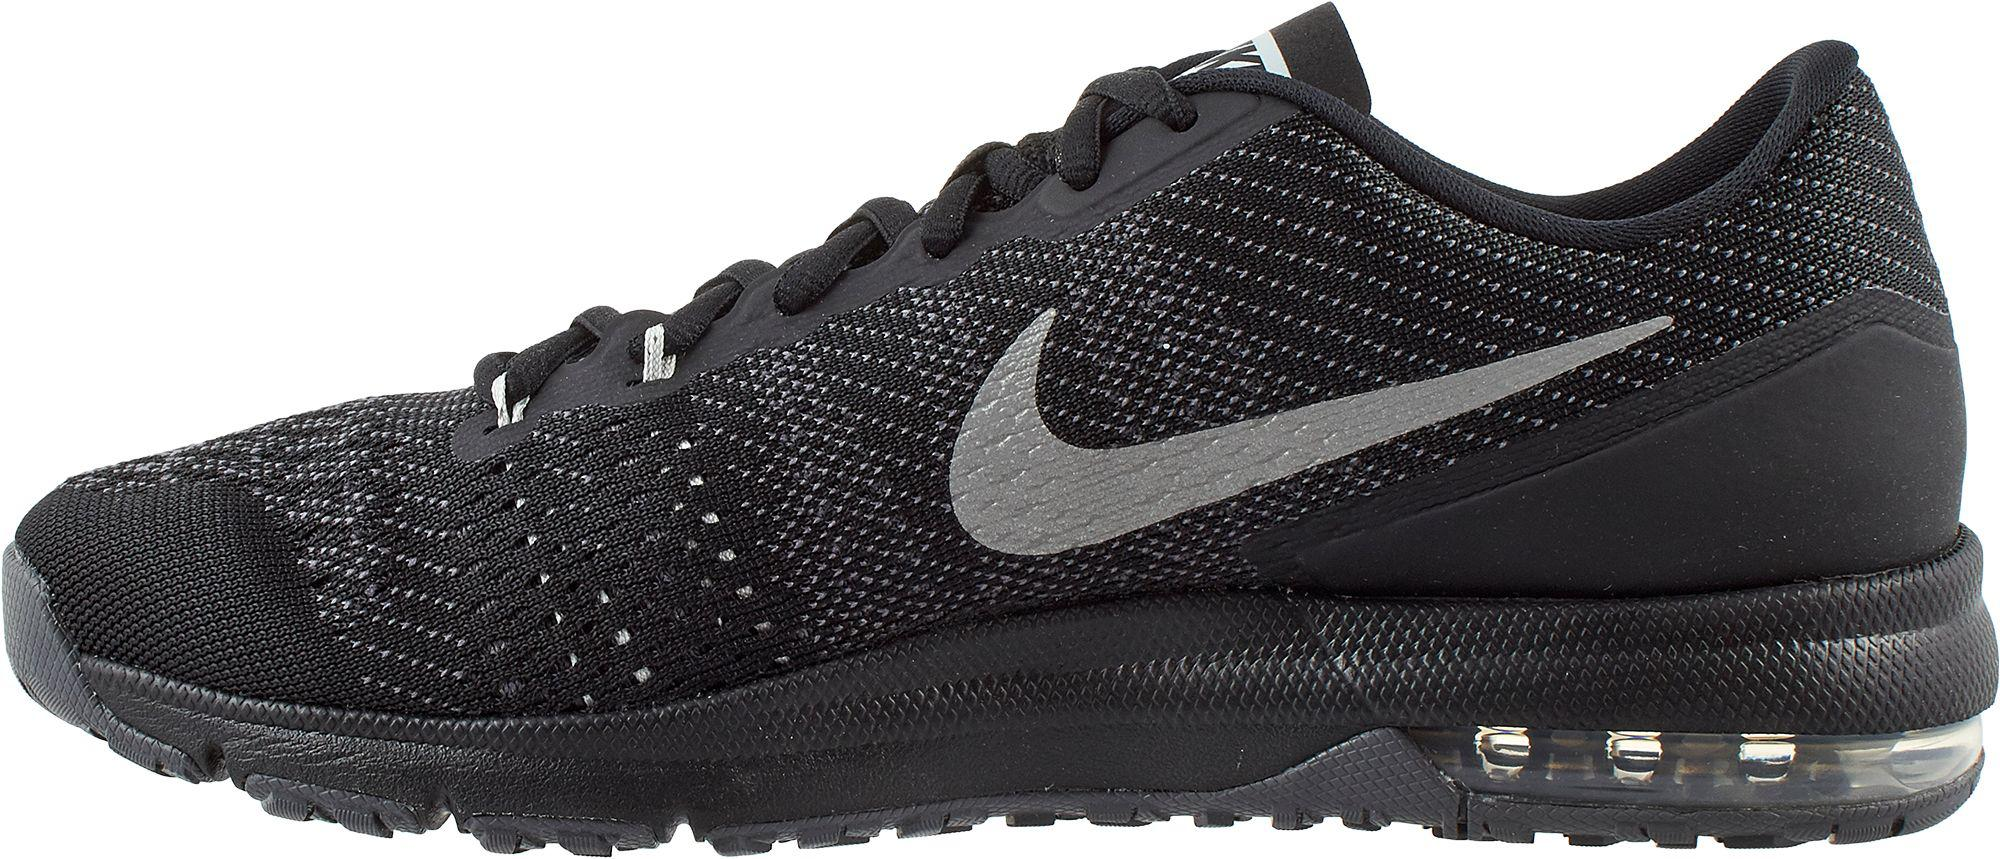 e0d4da2e8c Lyst - Nike Air Max Typha Training Shoes in Metallic for Men